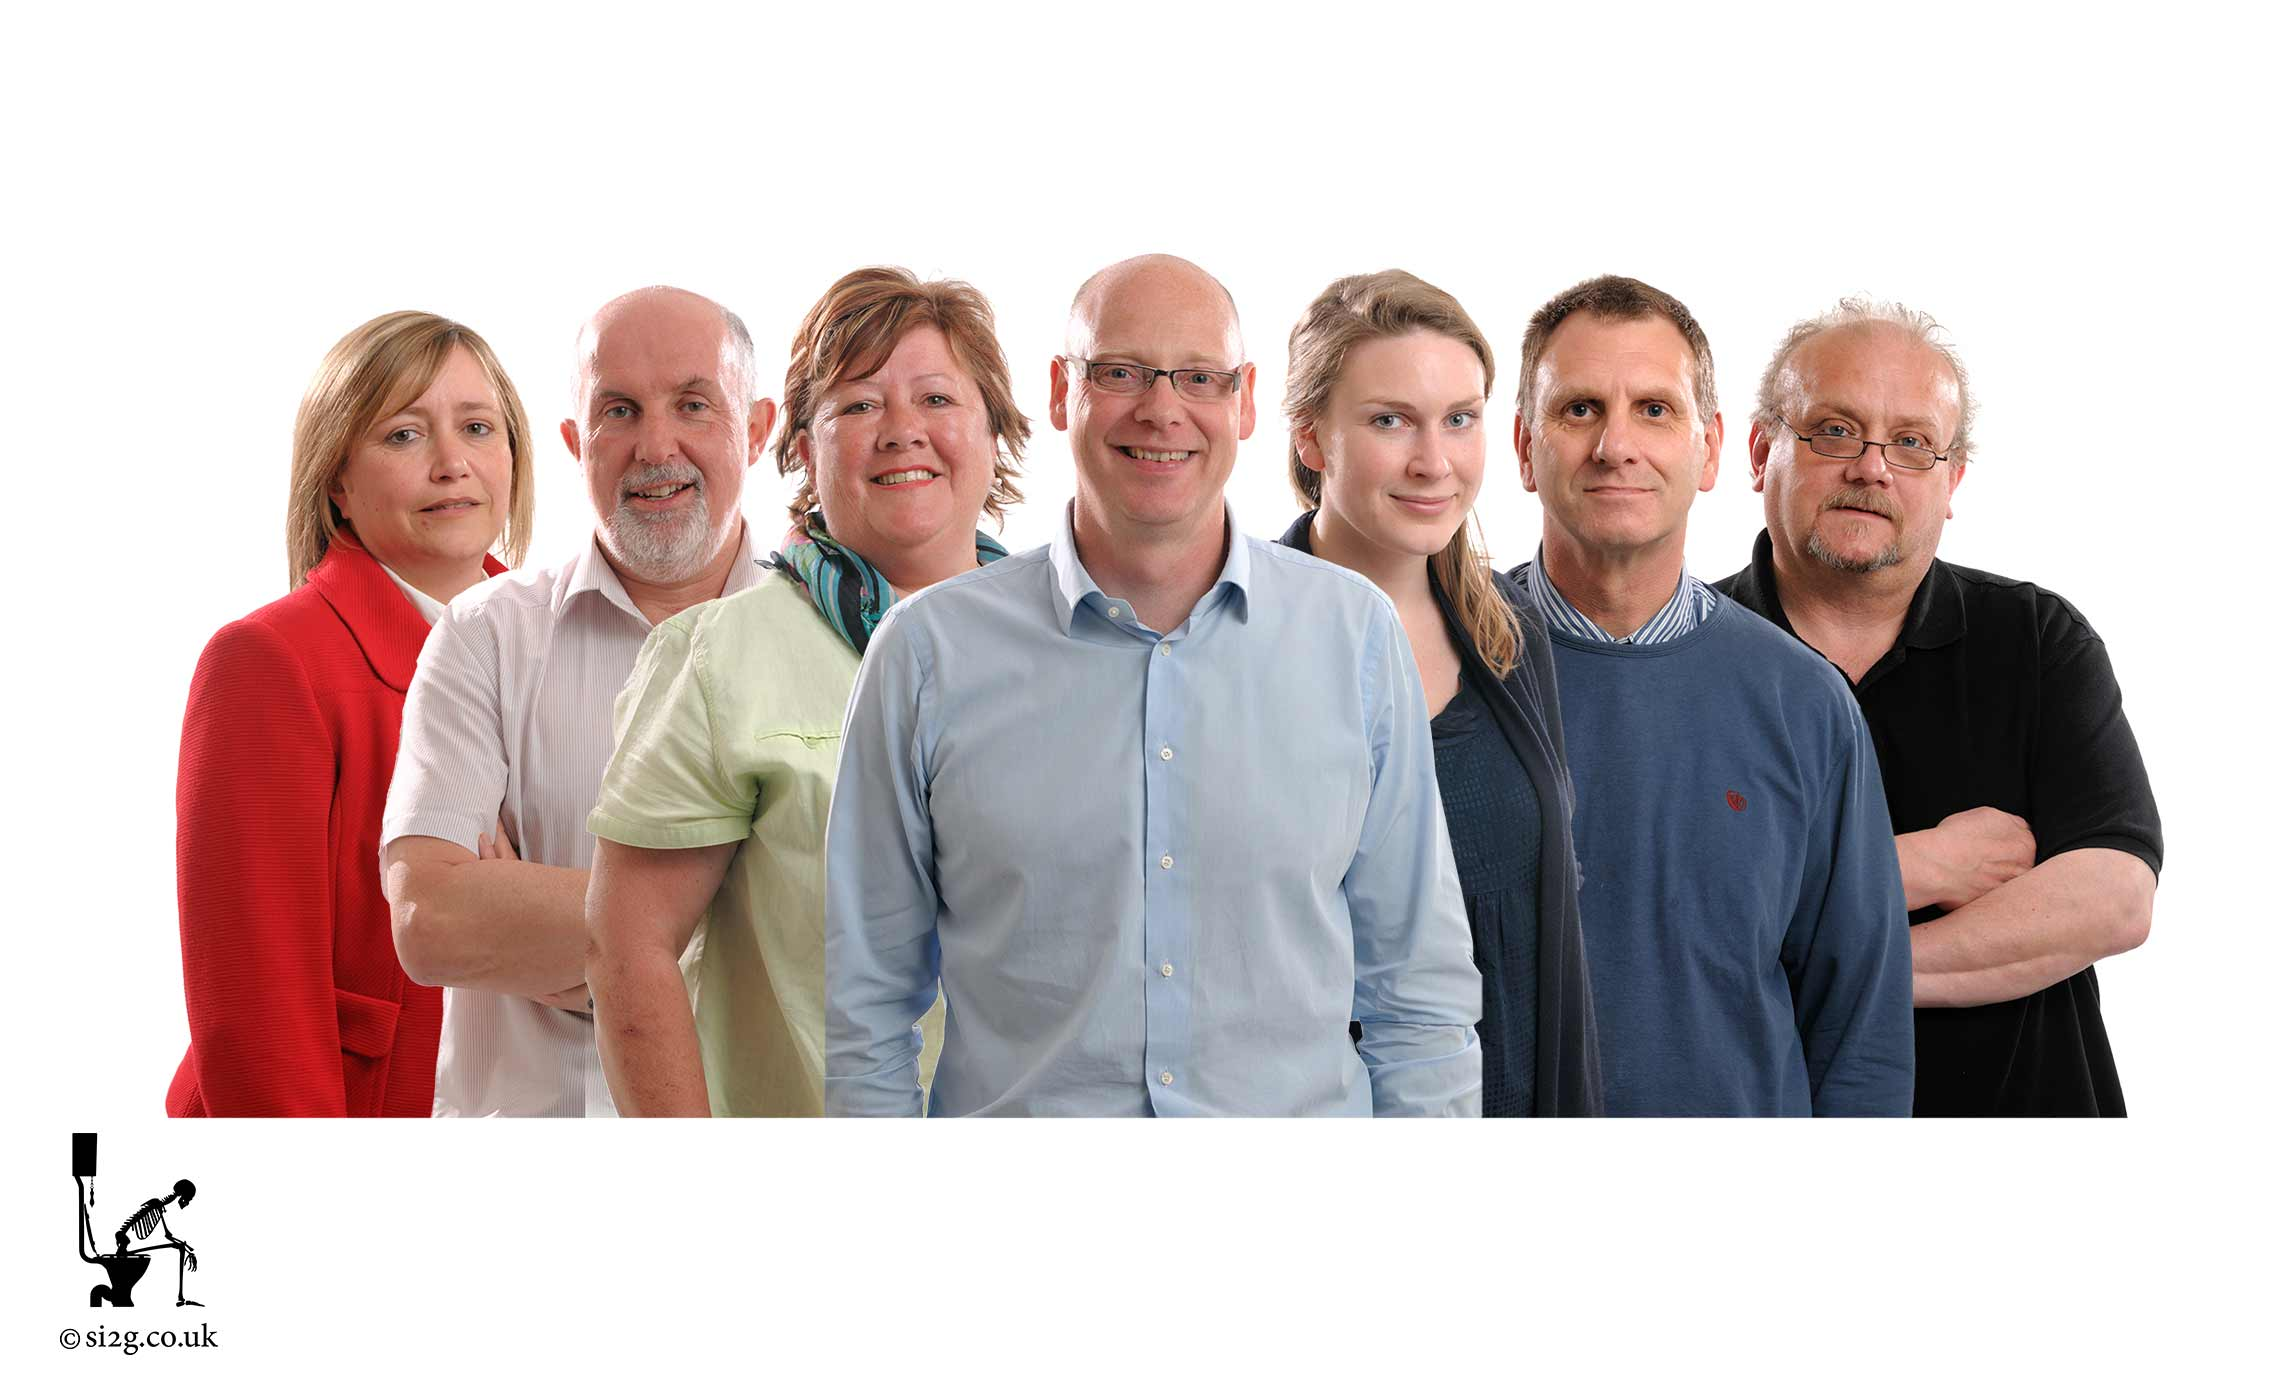 Team Composite - This group photo composite is a great way to promote your team and causes a lot less disruption to your company